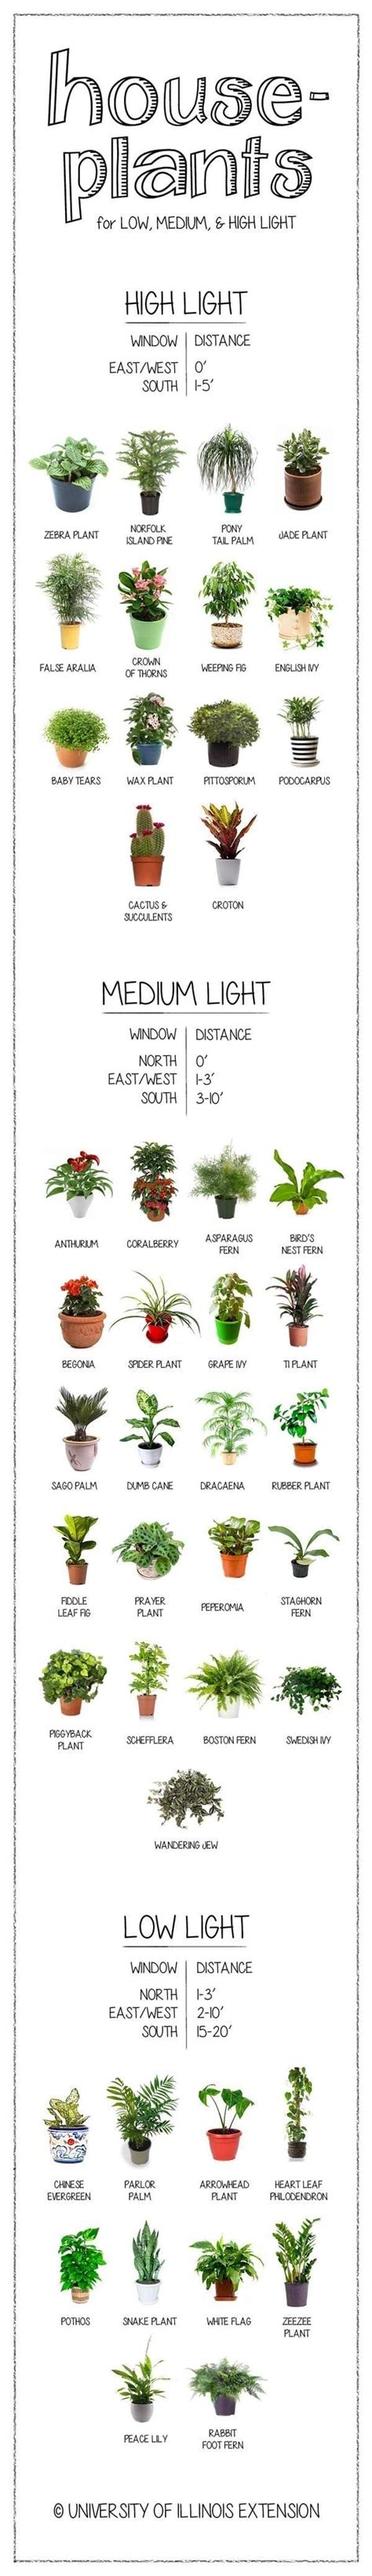 herb care chart 25 best ideas about avocado tree on pinterest growing